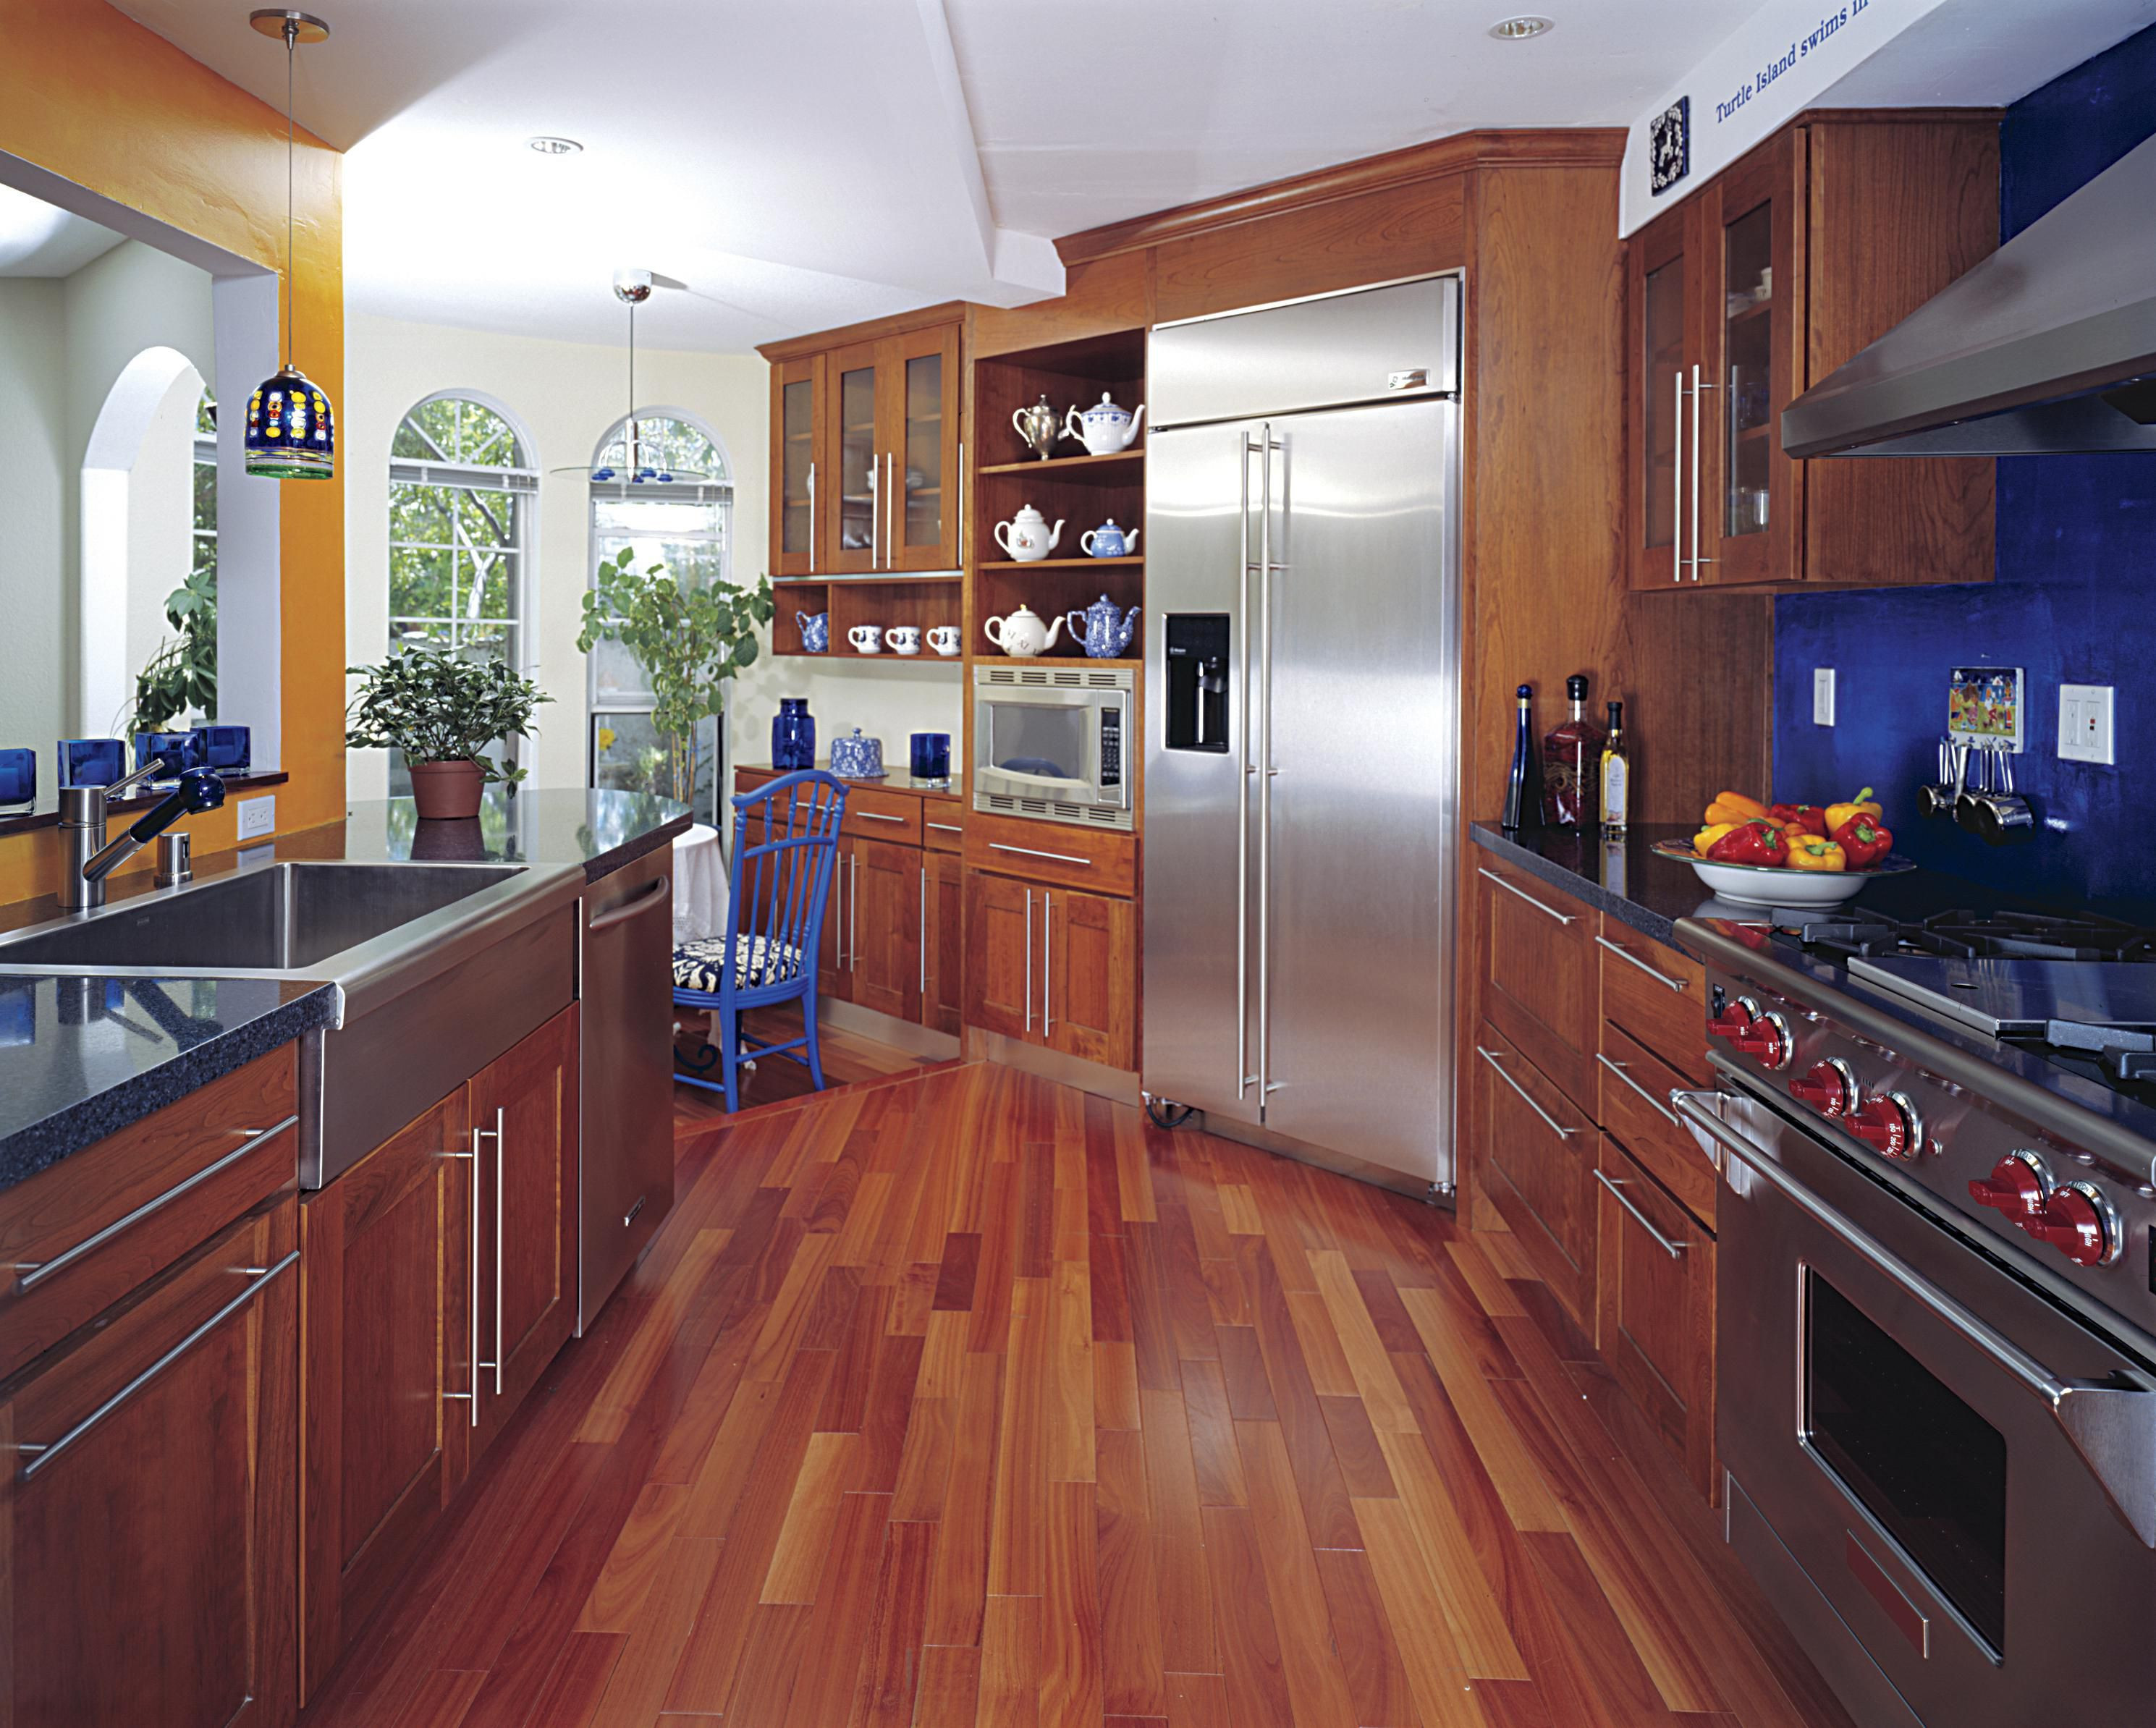 rustic red oak hardwood flooring of hardwood floor in a kitchen is this allowed inside 186828472 56a49f3a5f9b58b7d0d7e142